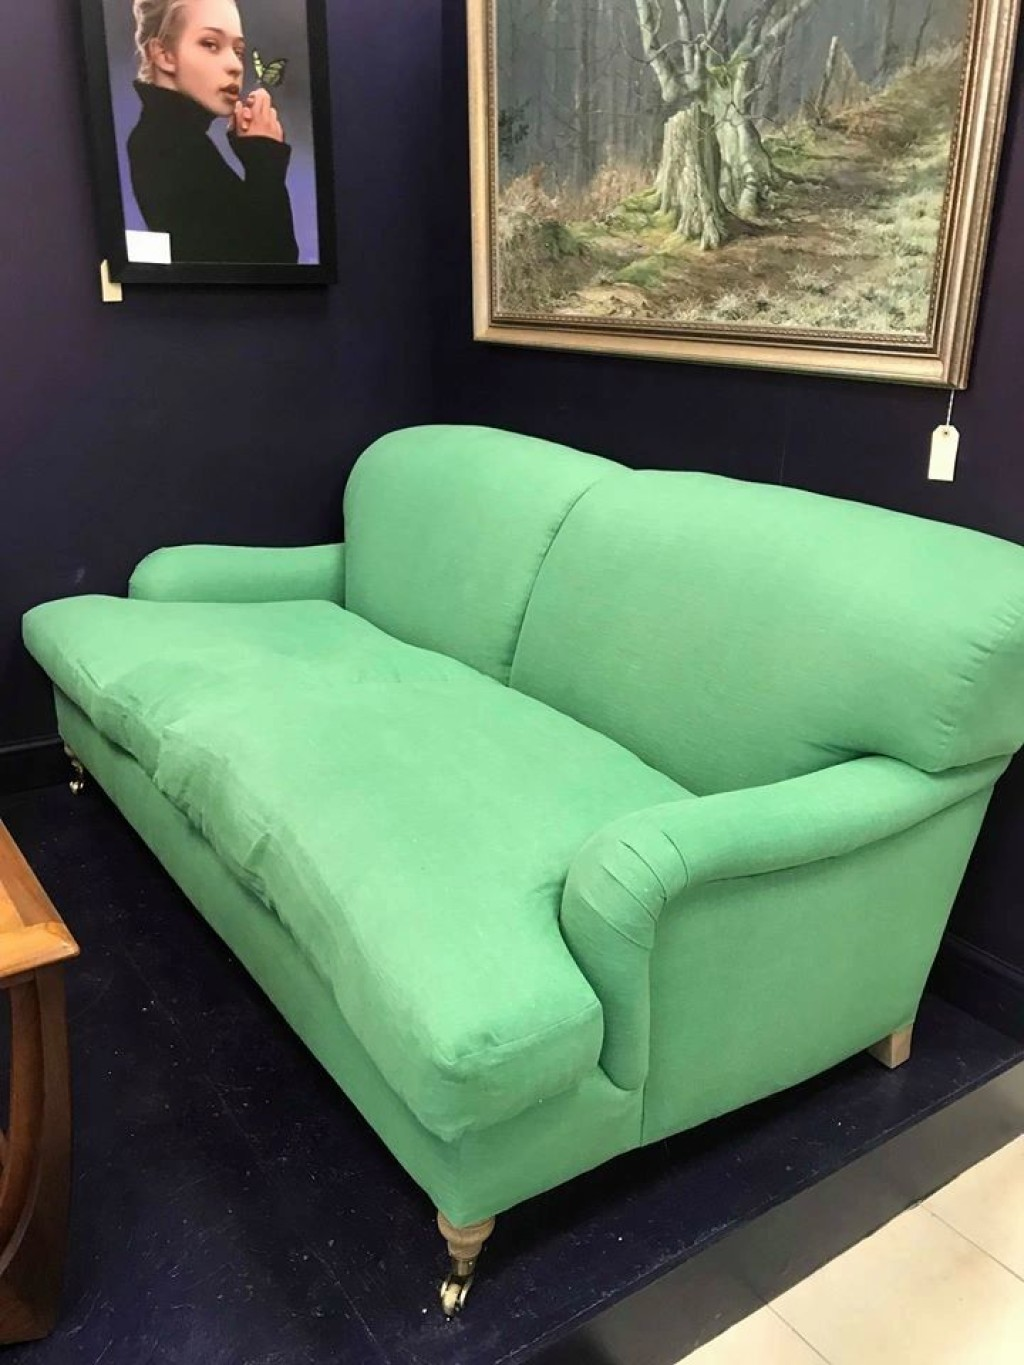 OUR BESPOKE HOWARD SOFA IS NOW IN STORE!